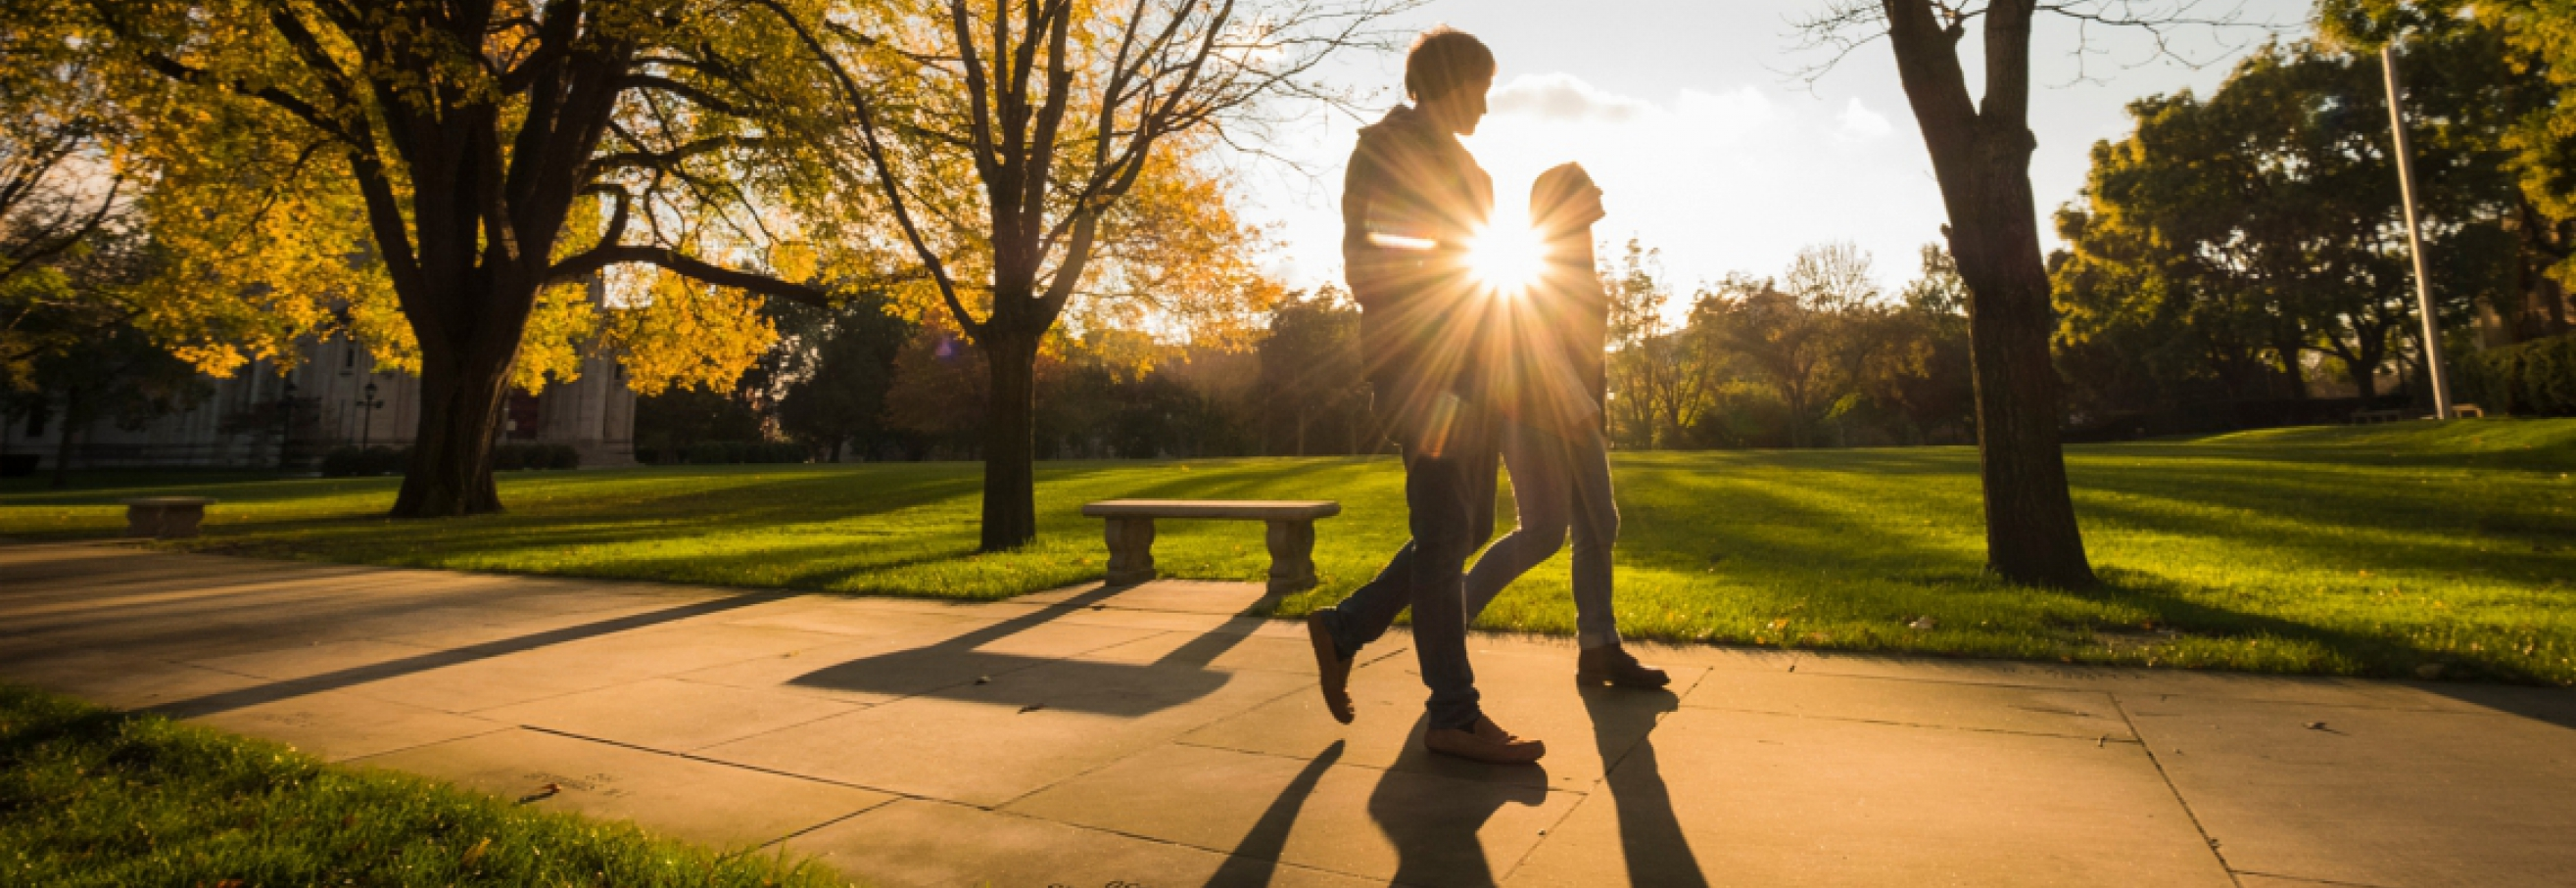 Two students walking in the sunshine on campus